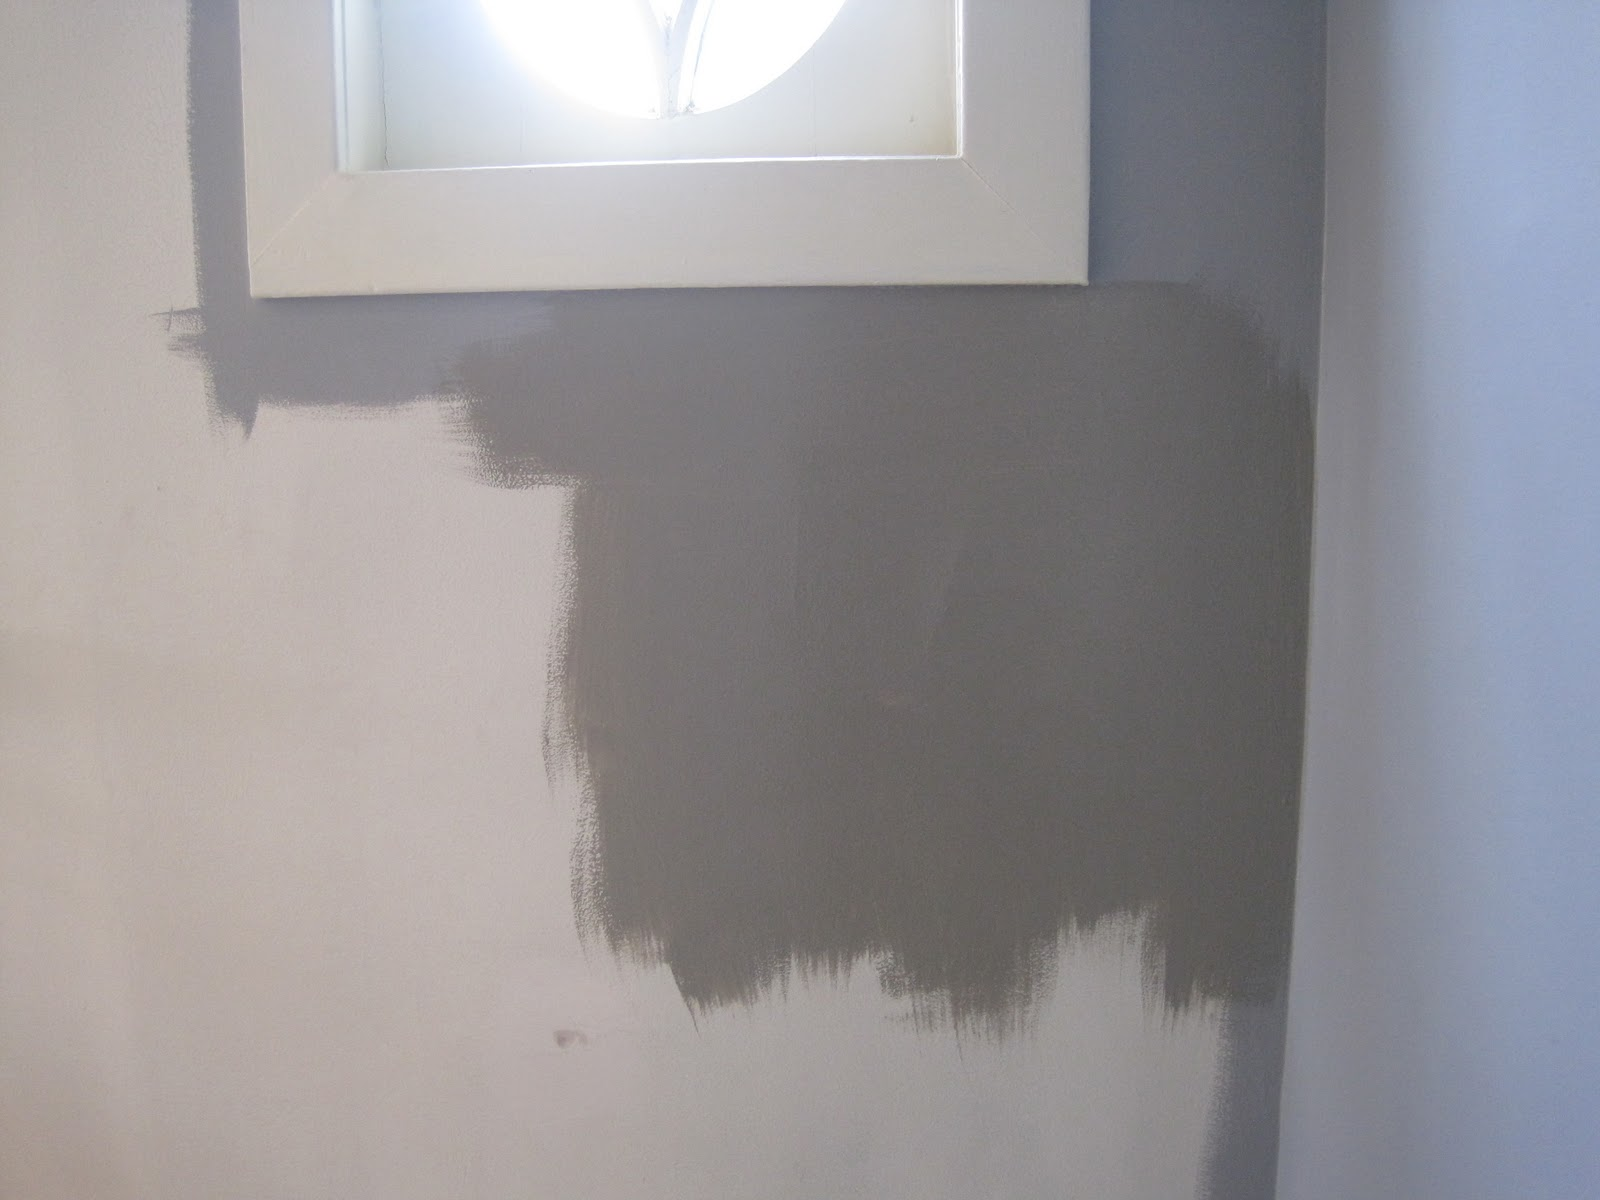 The First Swatch Was Sw Clic French Gray Too Dark Might Use This For My Daughter S Room Though